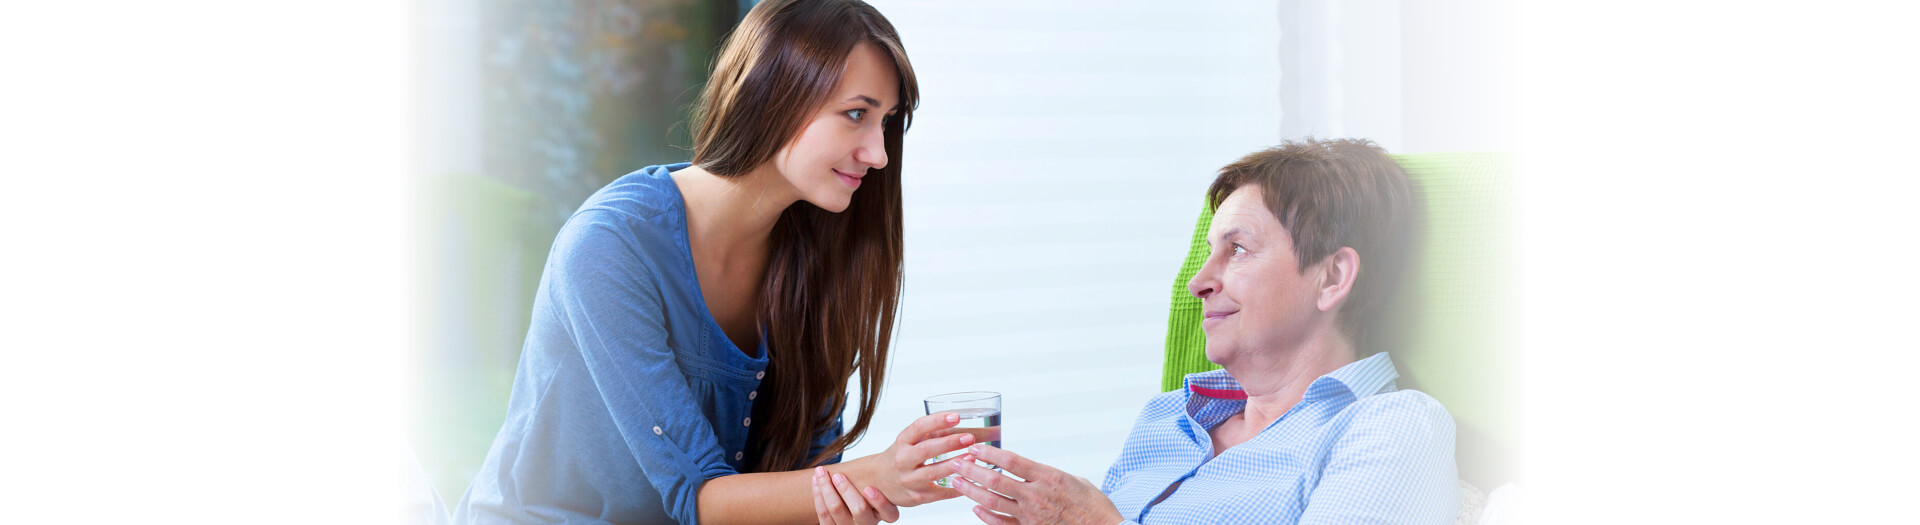 Caregiver giving glass of water to a senior